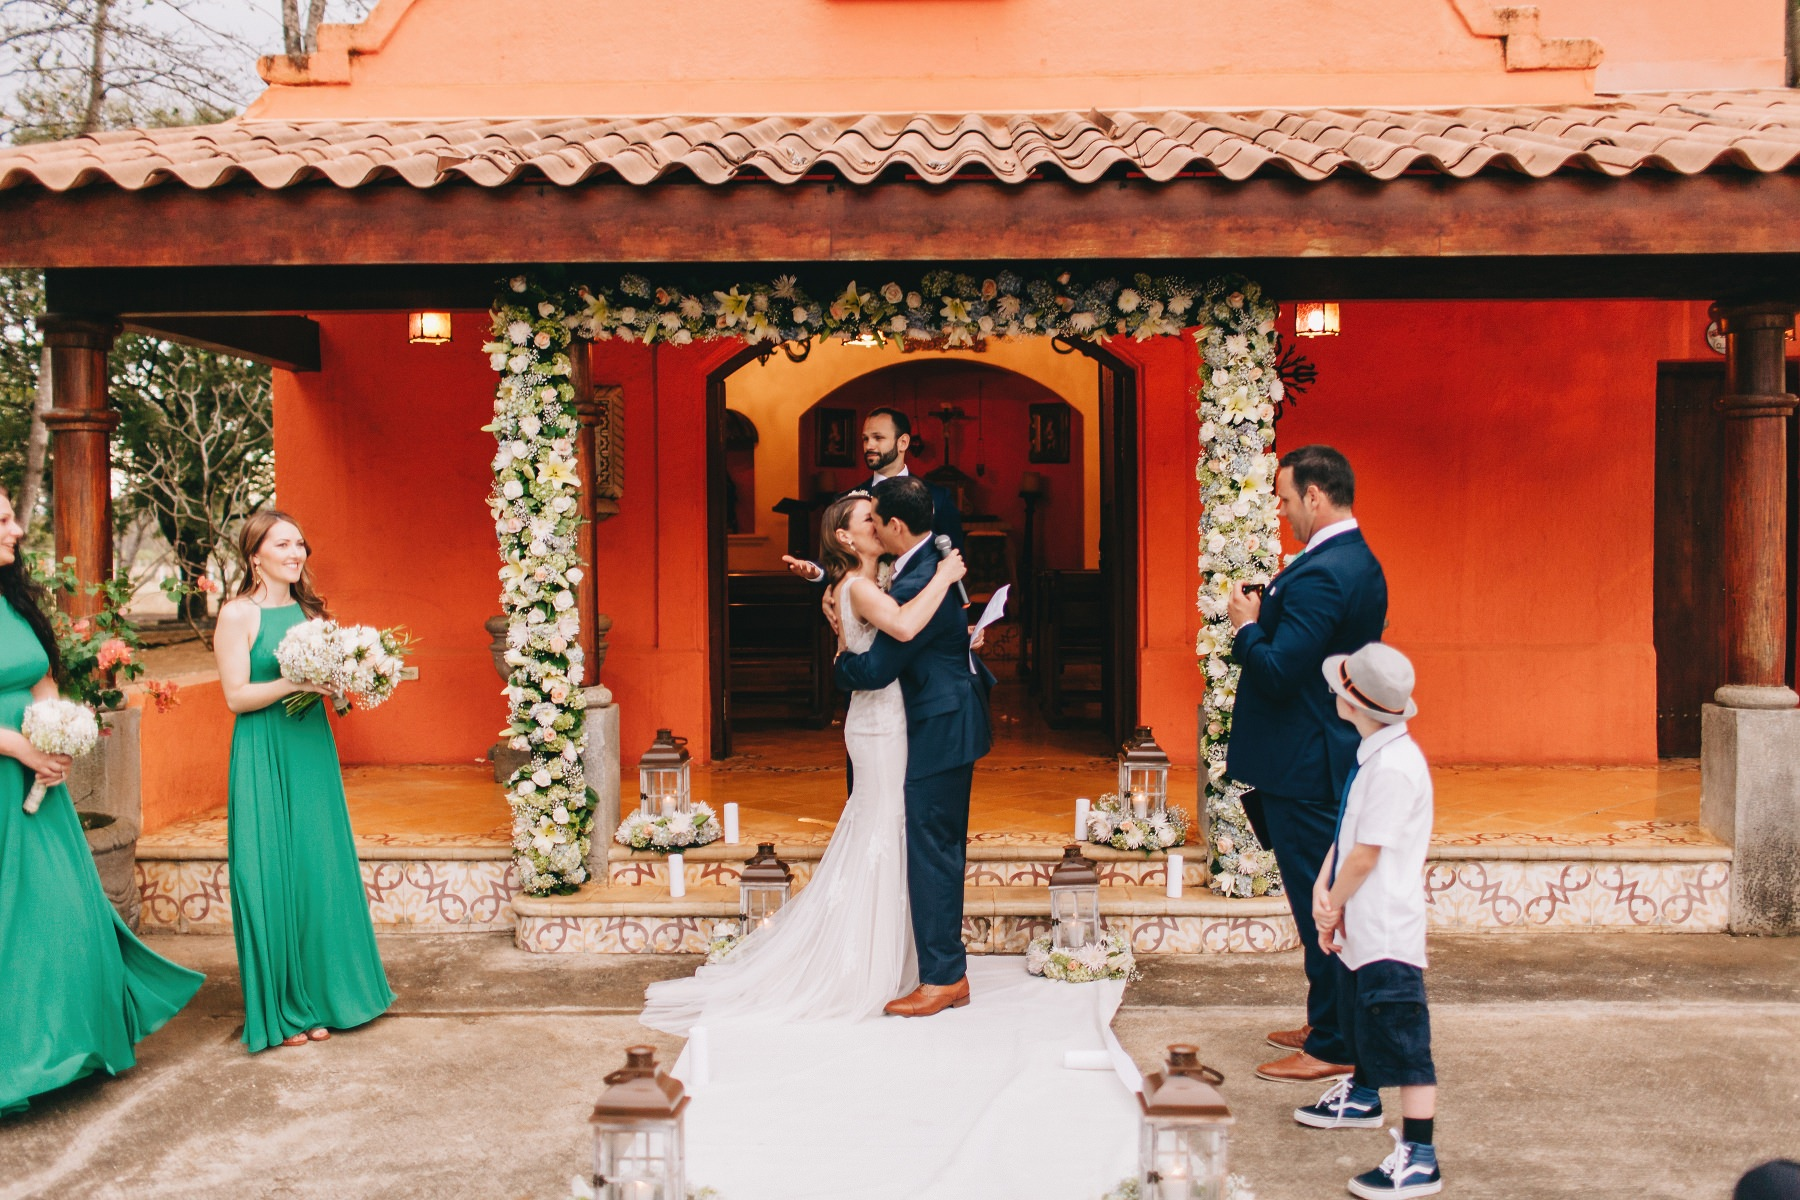 Colonial style Wedding photography - Mexico, Nicaragua